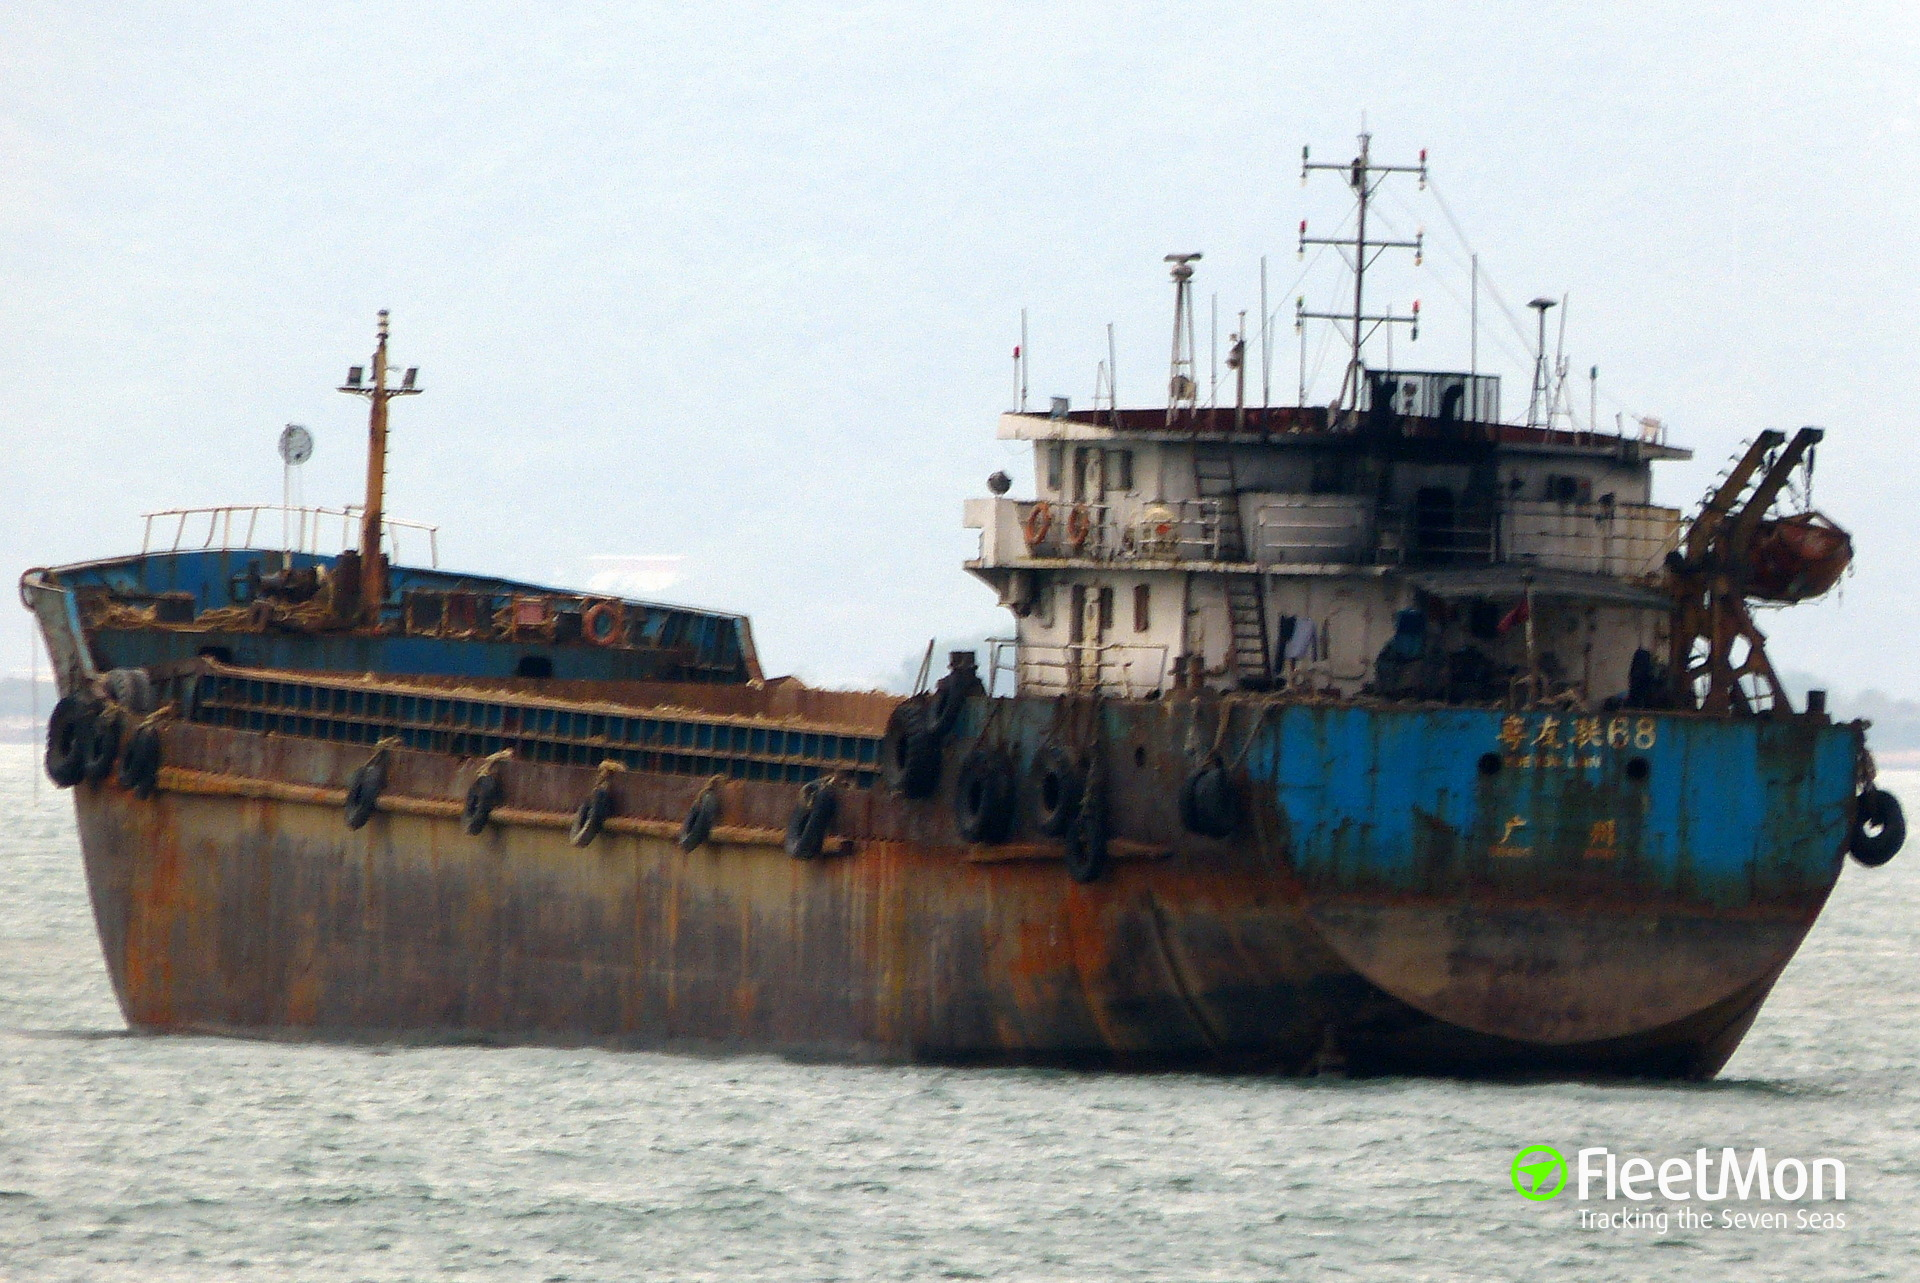 Freighter sank near Macao, crew rescued